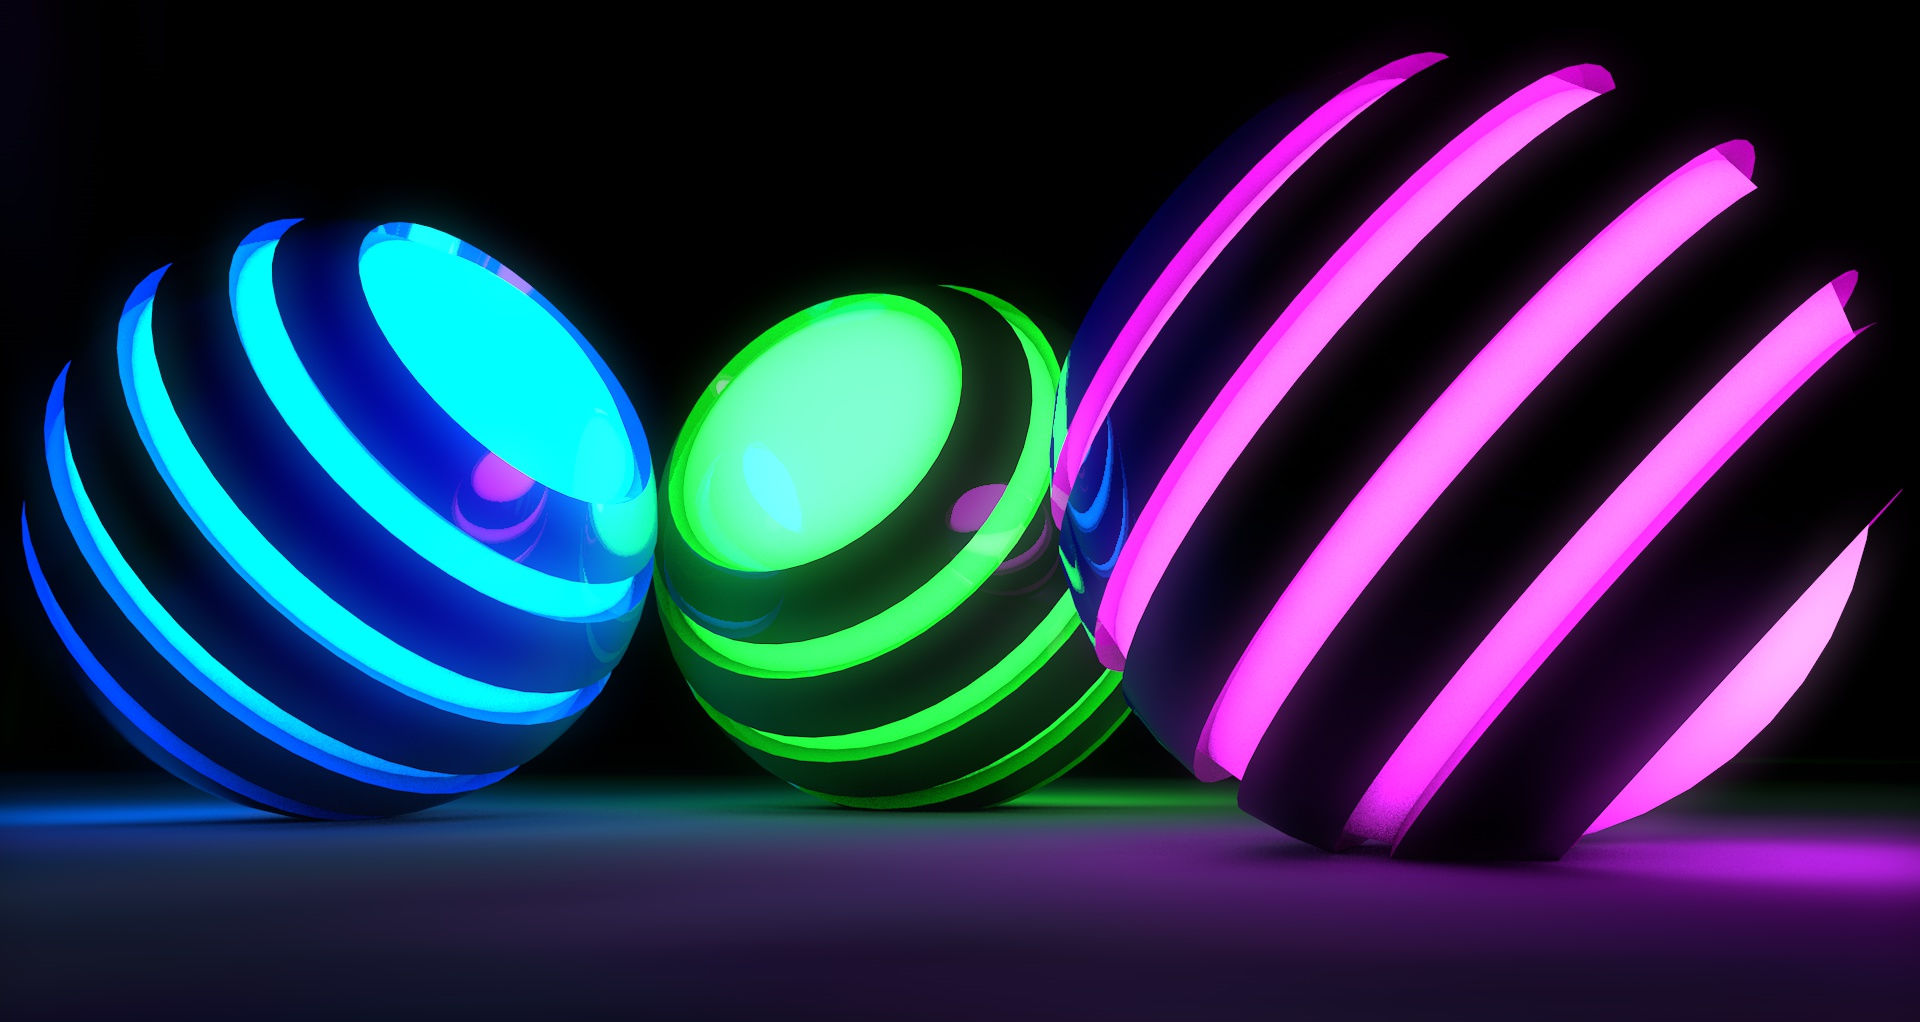 cool neon hd background